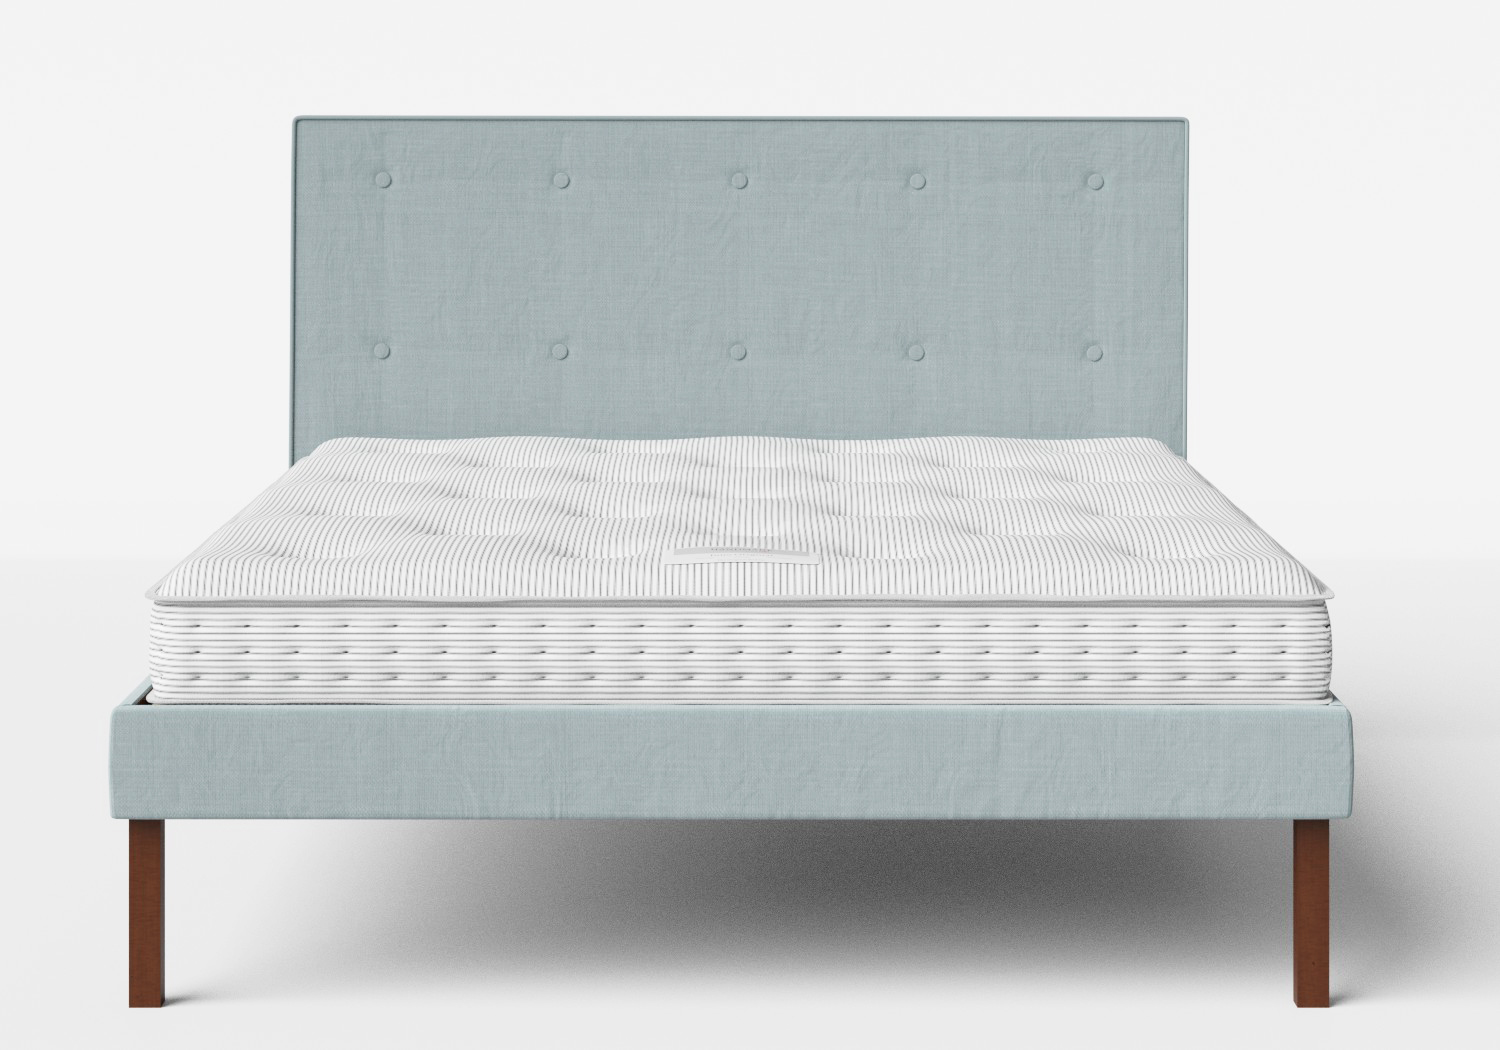 Misaki Upholstered Bed in Wedgewood fabric with buttoning shown with Juno 1 mattress